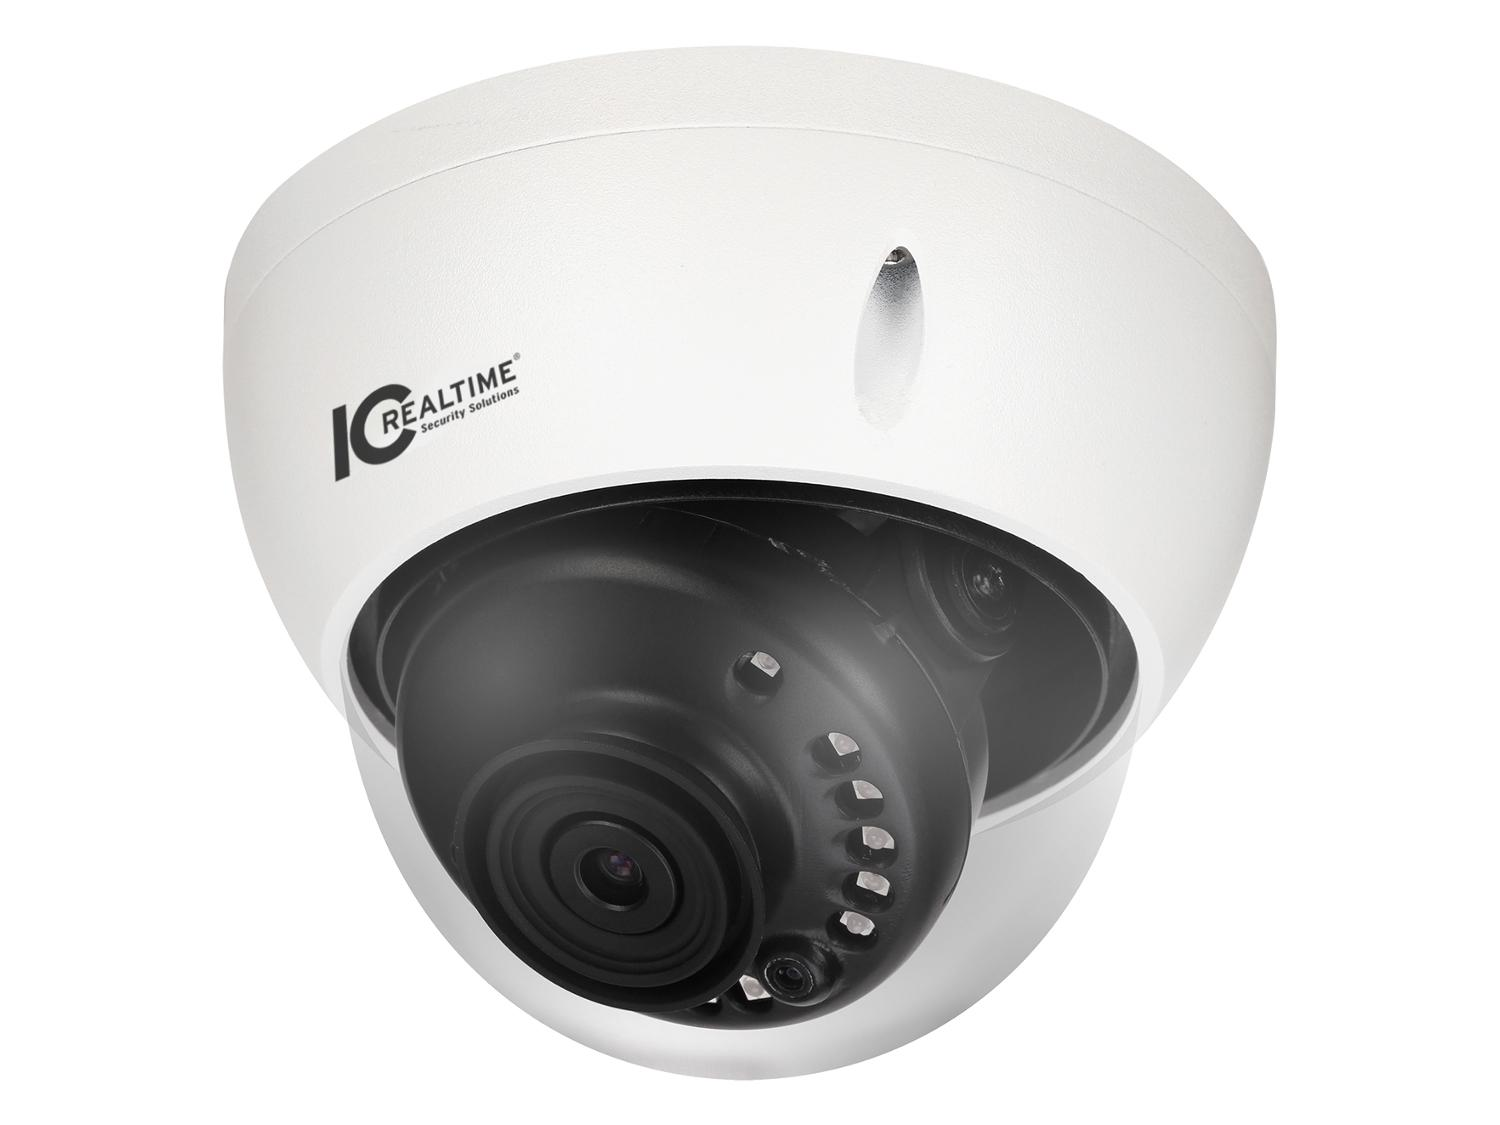 ICRealtime AVS-5MD4025-IR 5MP HDAVS Indoor/Outdoor Mid Size Vandal Dome/Fixed 2.8mm Lens/90 Feet IR